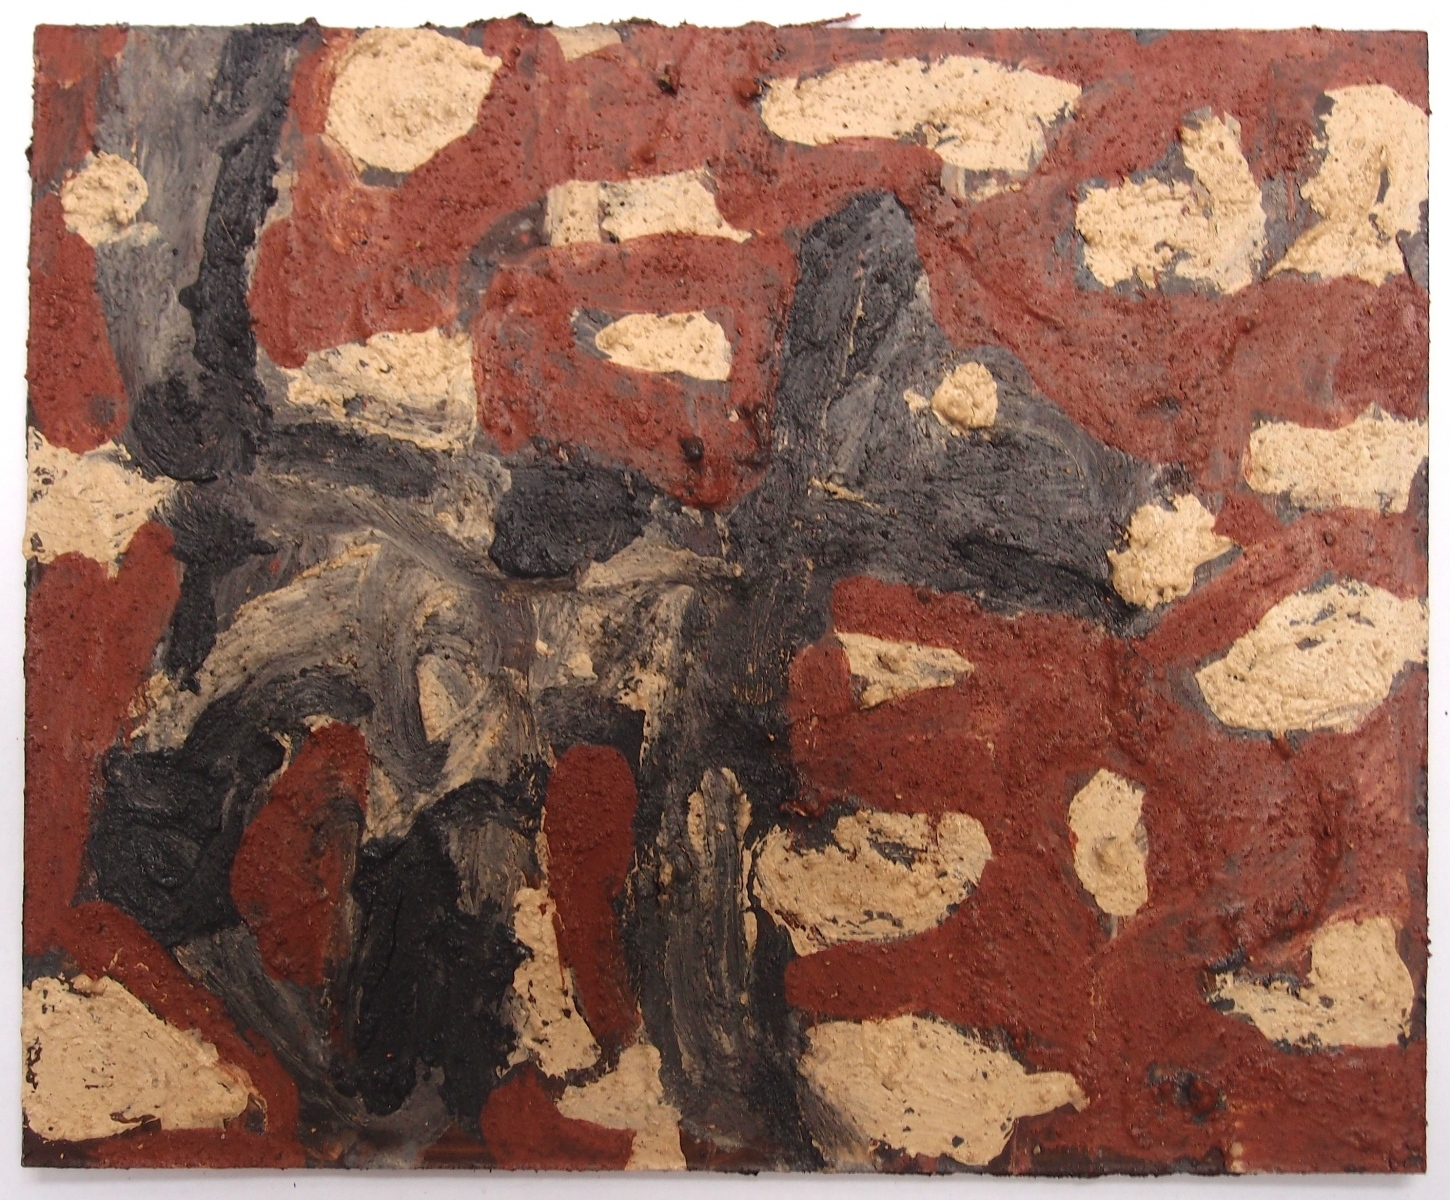 lupo/Wolf/loup/wolf (earth pigments on board) © p ward 2017